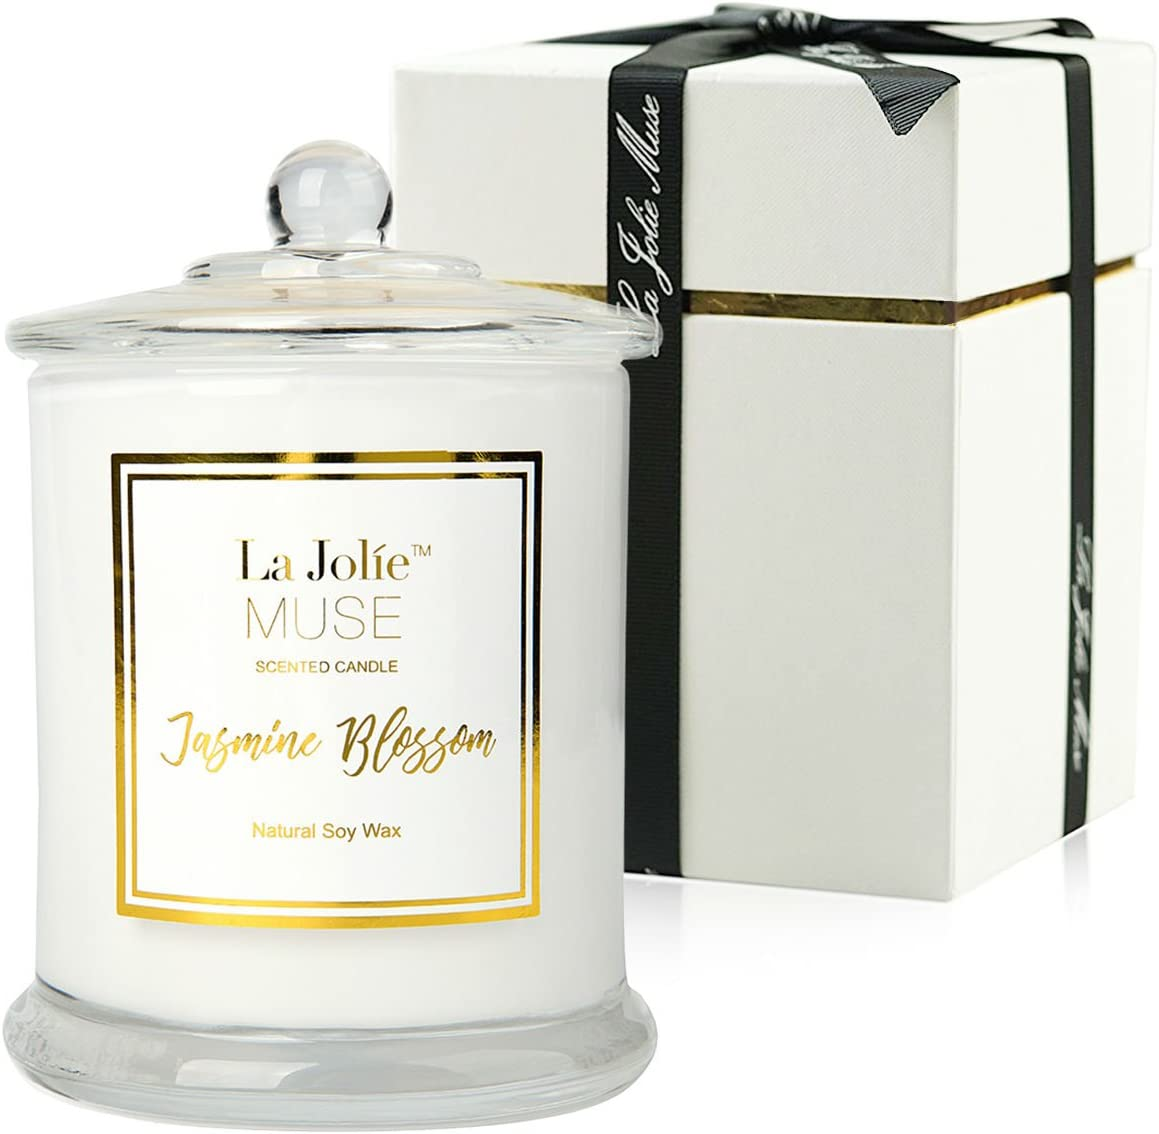 LA JOLIE MUSE Jasmine Scented Candle Gift Natural Soy Wax, 60 Hours Burn Fine Home Fragrance, Glass Jar Candles Gift for Her